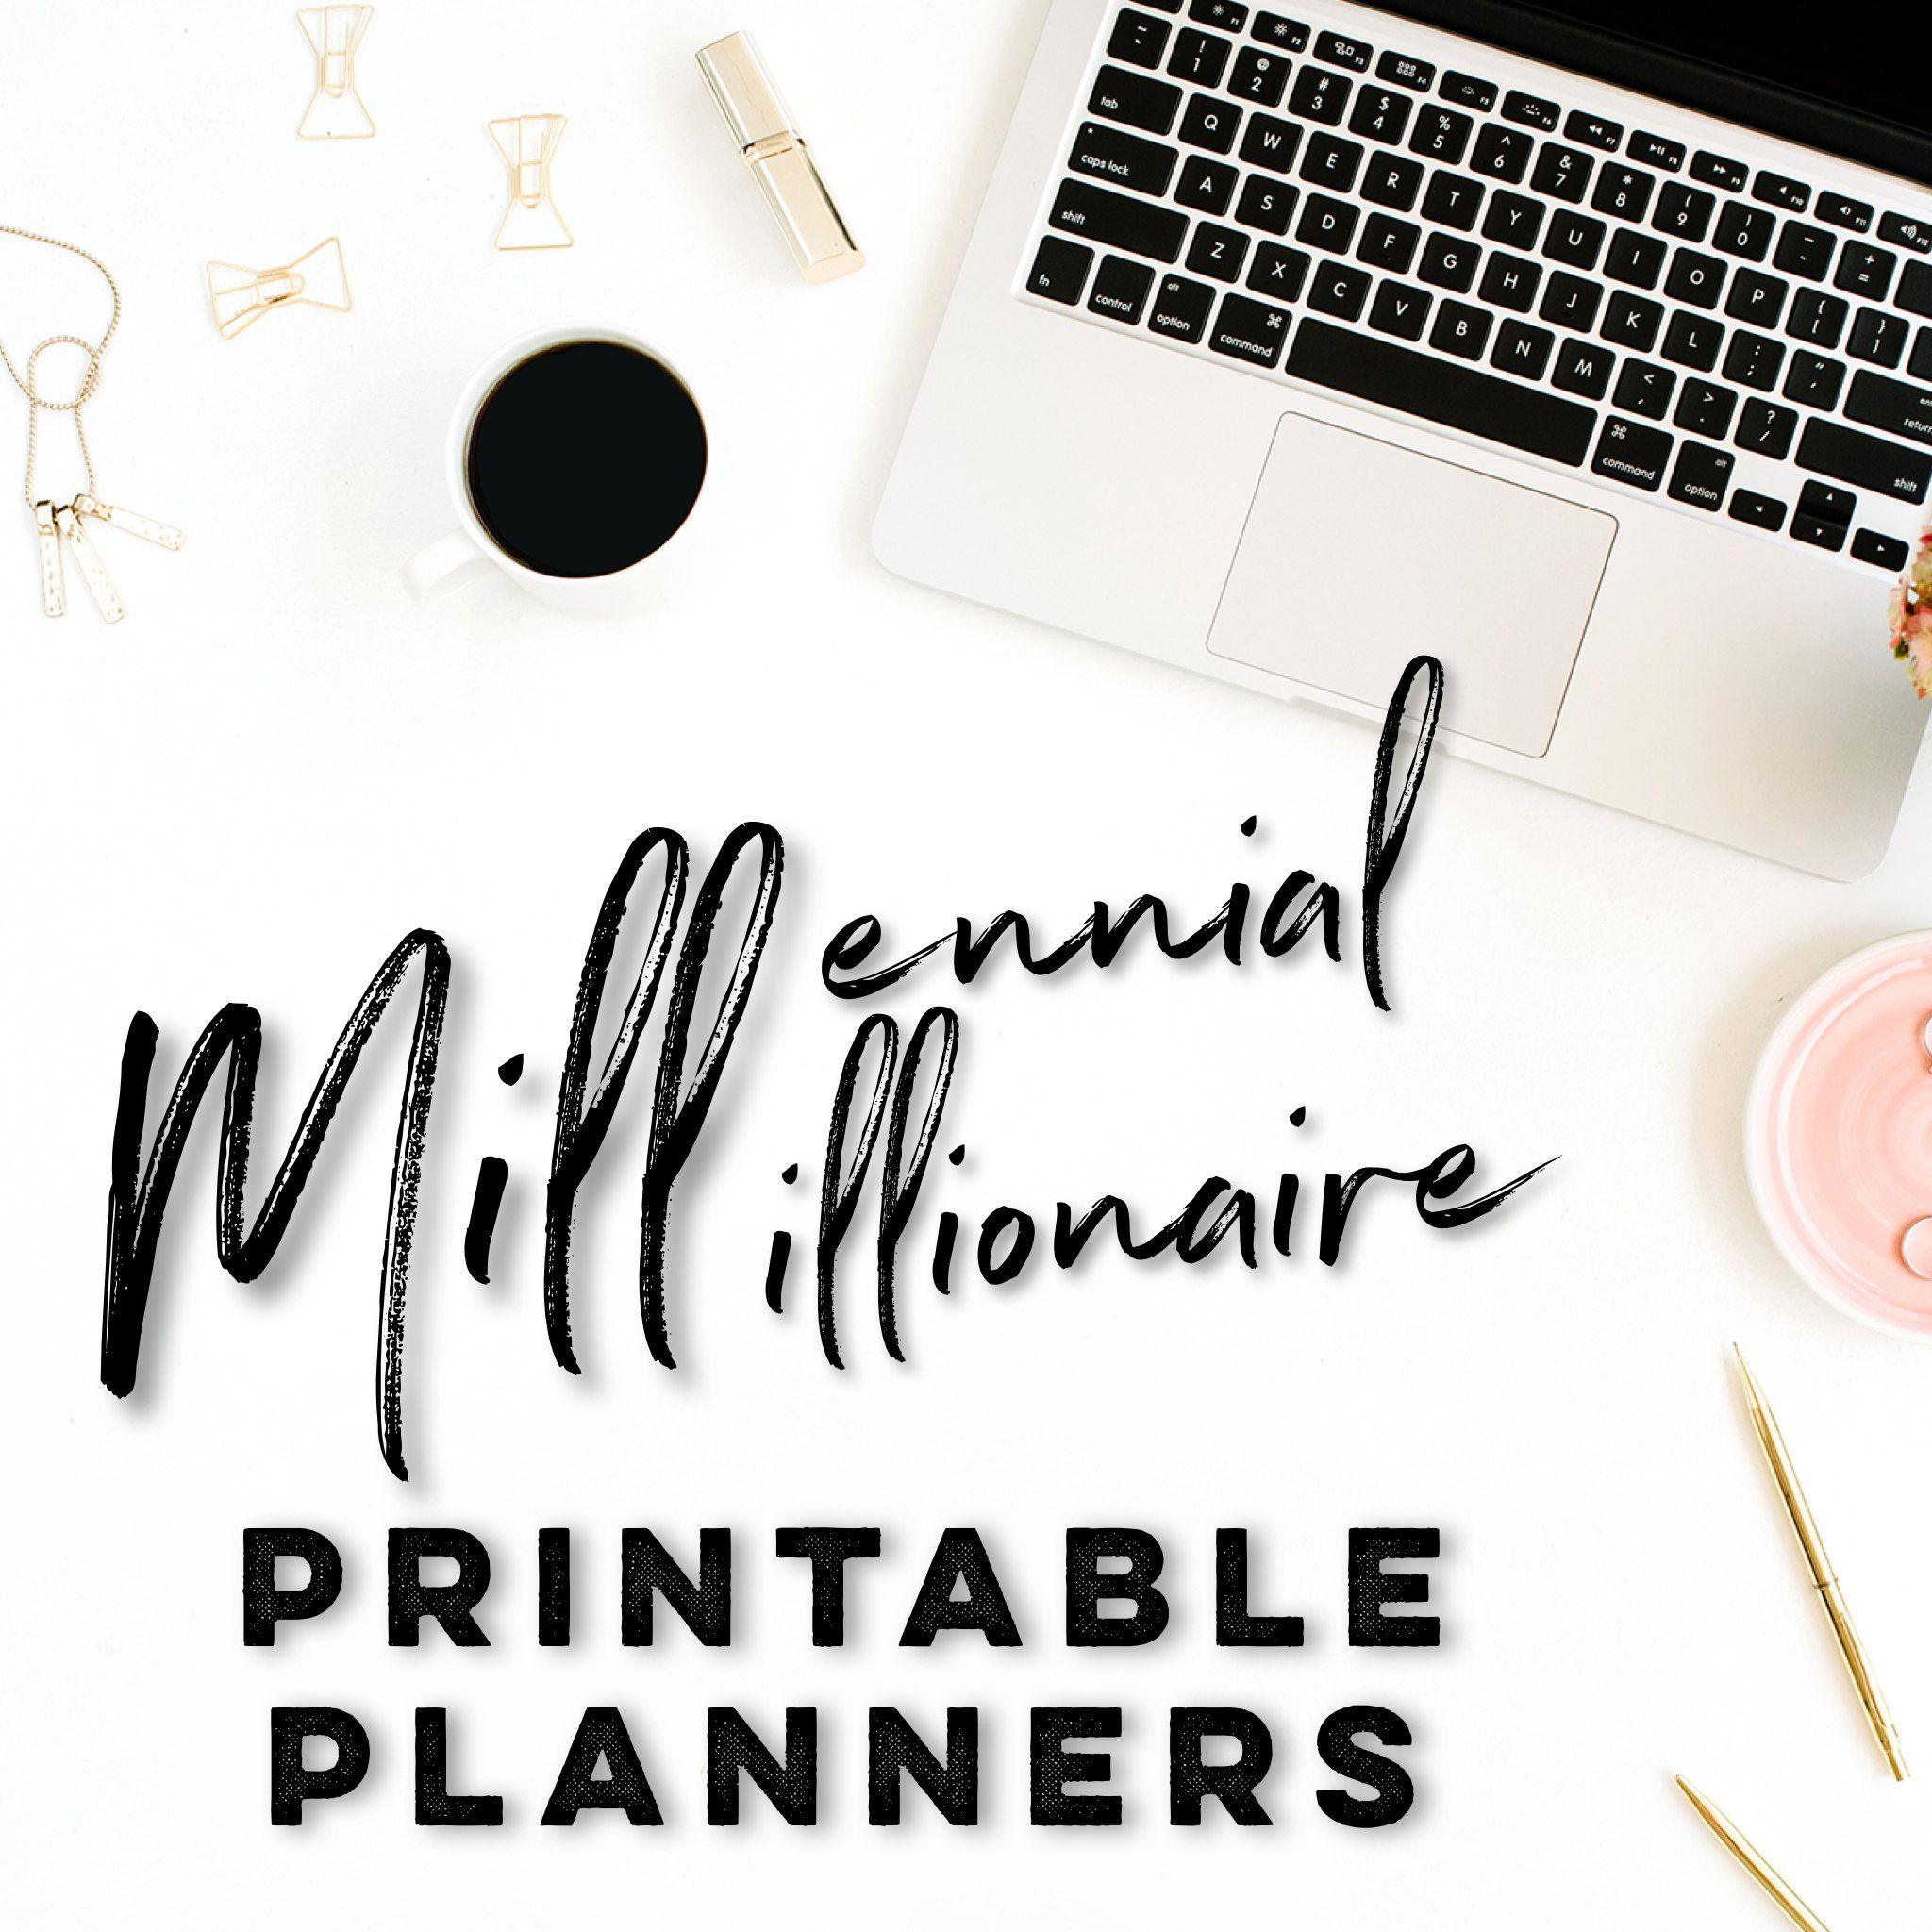 You Searched For Millennialmillonaire Discover The